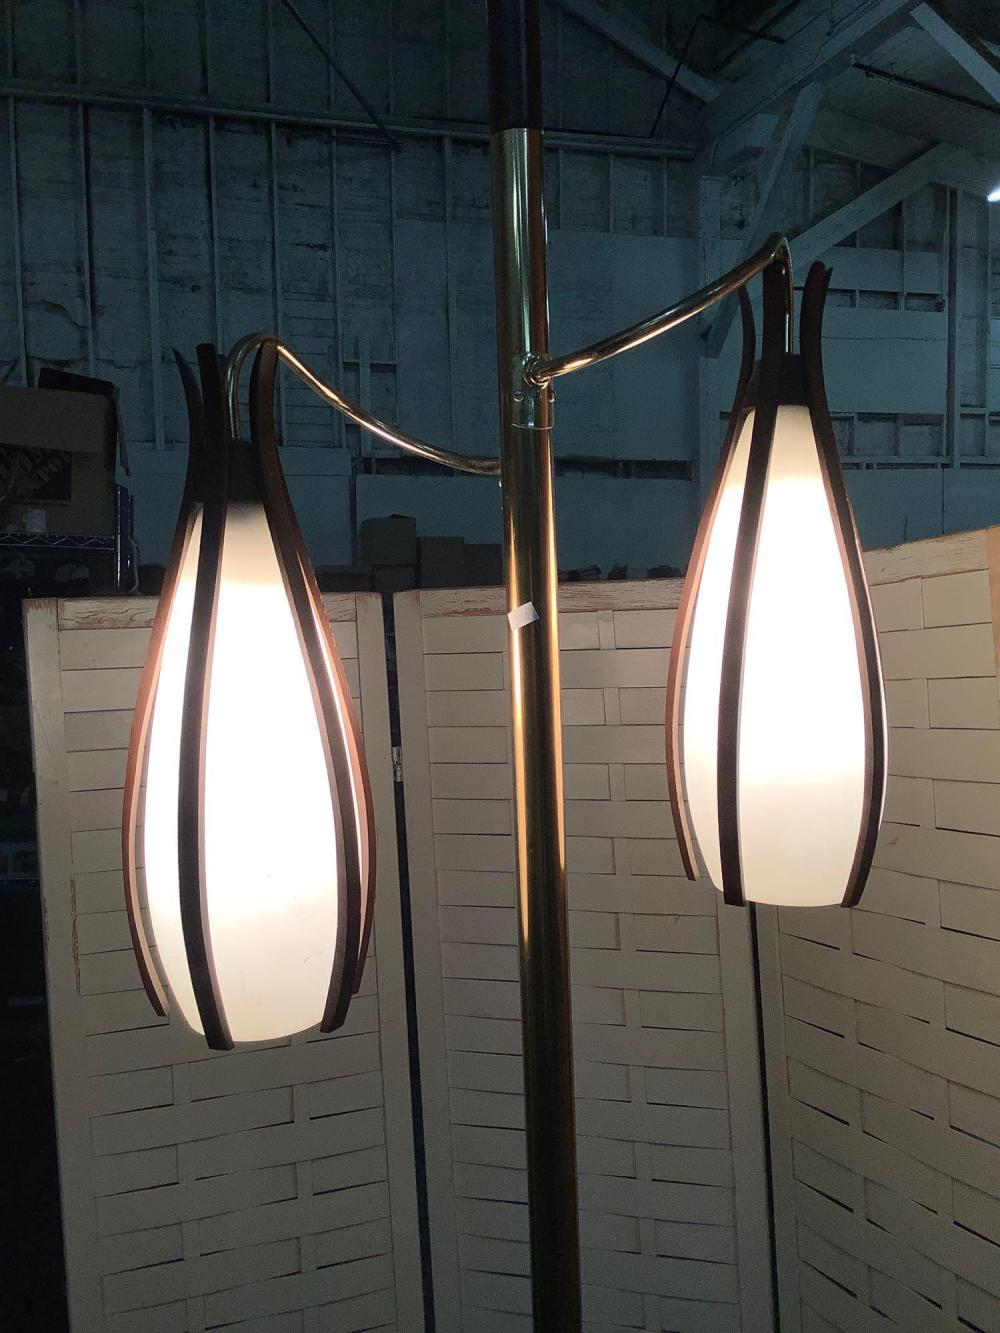 Lot 52: Vintage floor-to-ceiling lamp with glass shades / brass and wood accents , tested and working